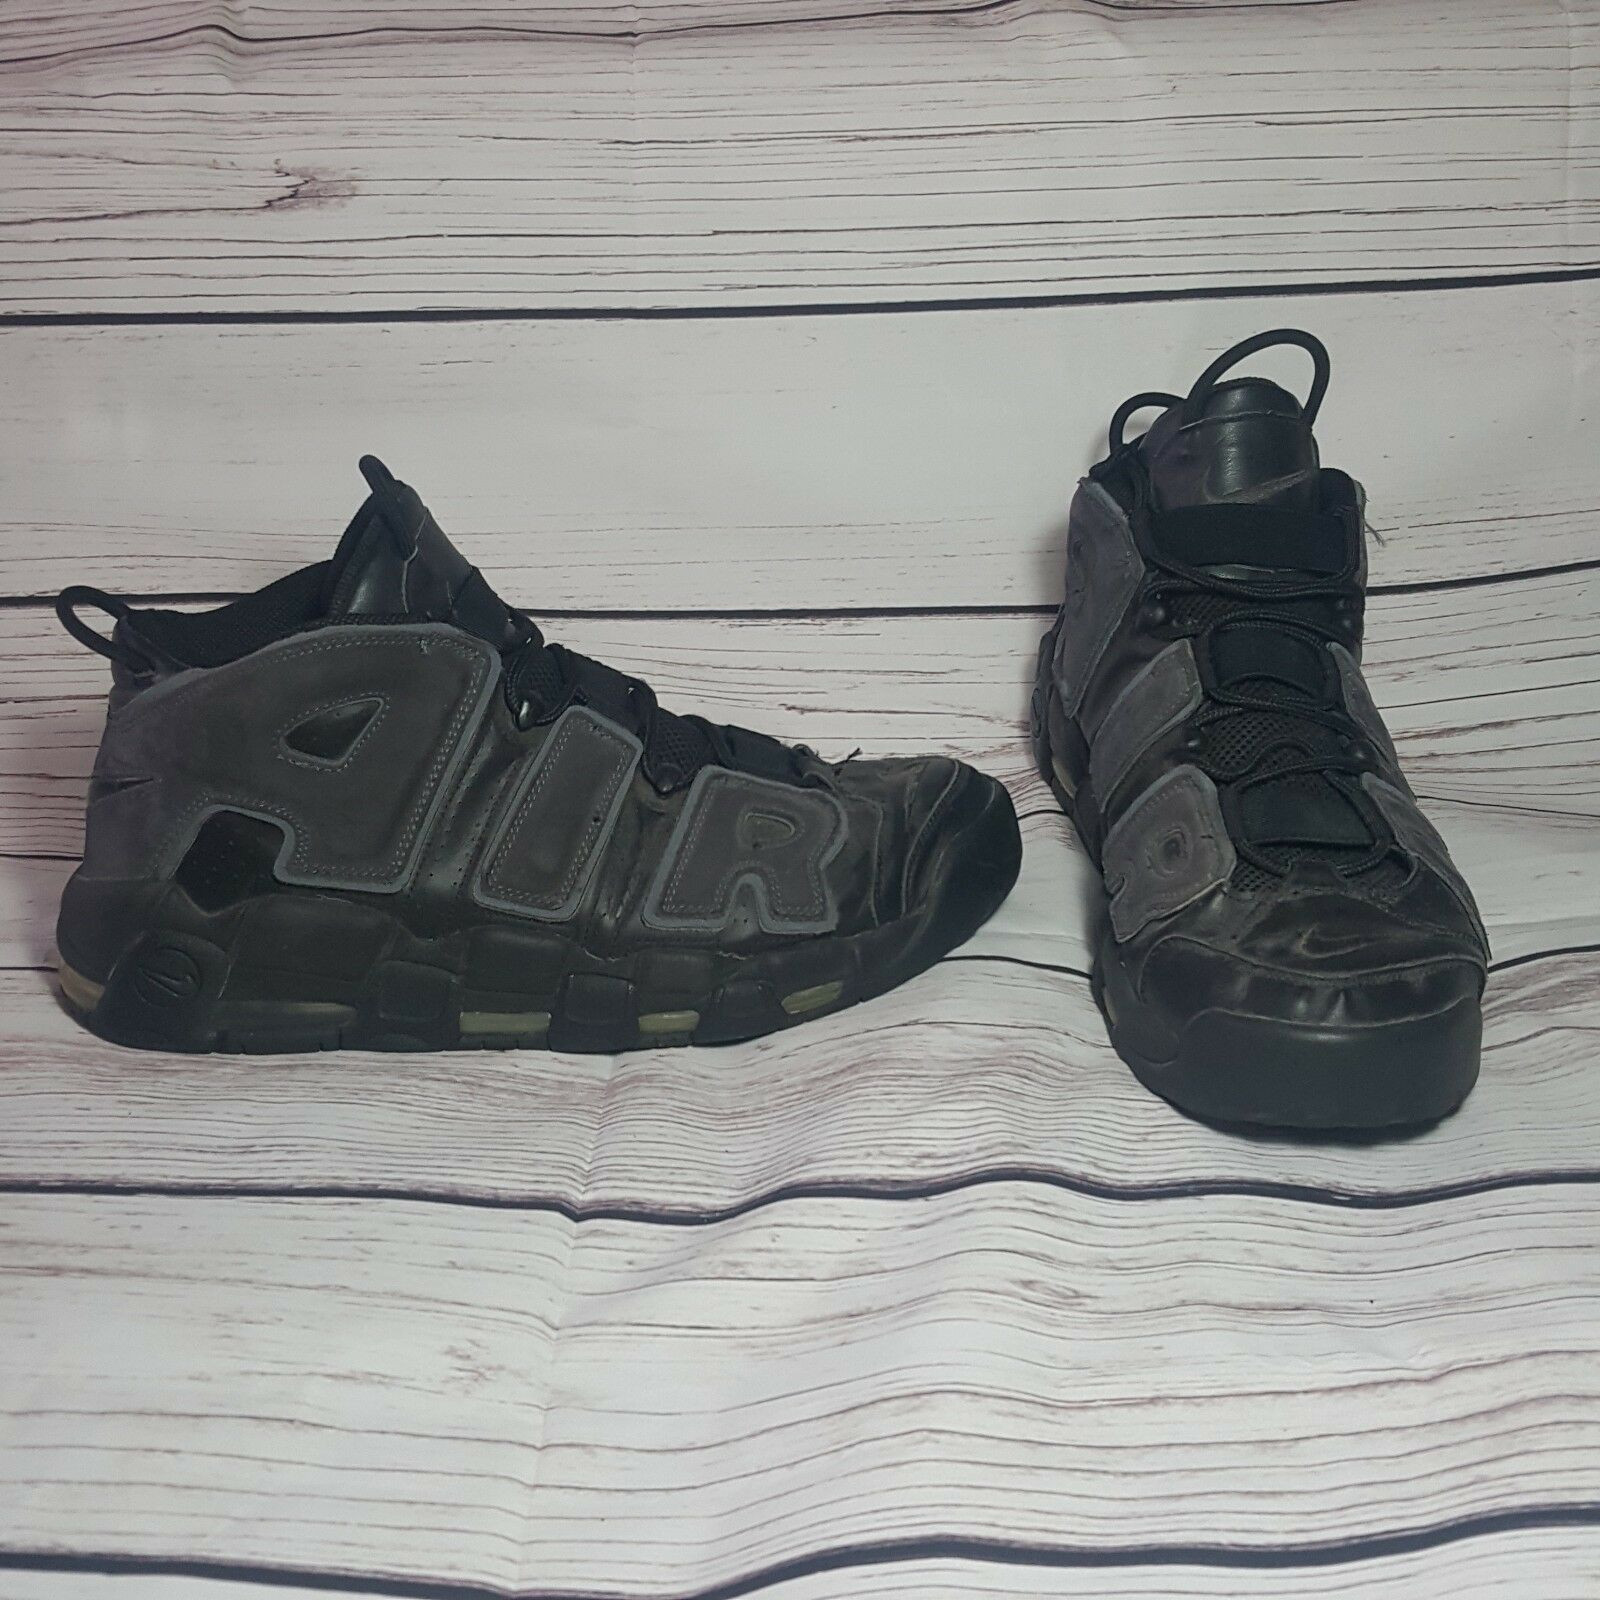 2006 Nike Air More Tempo Black/Black-anthracite 312971-002 Size 13